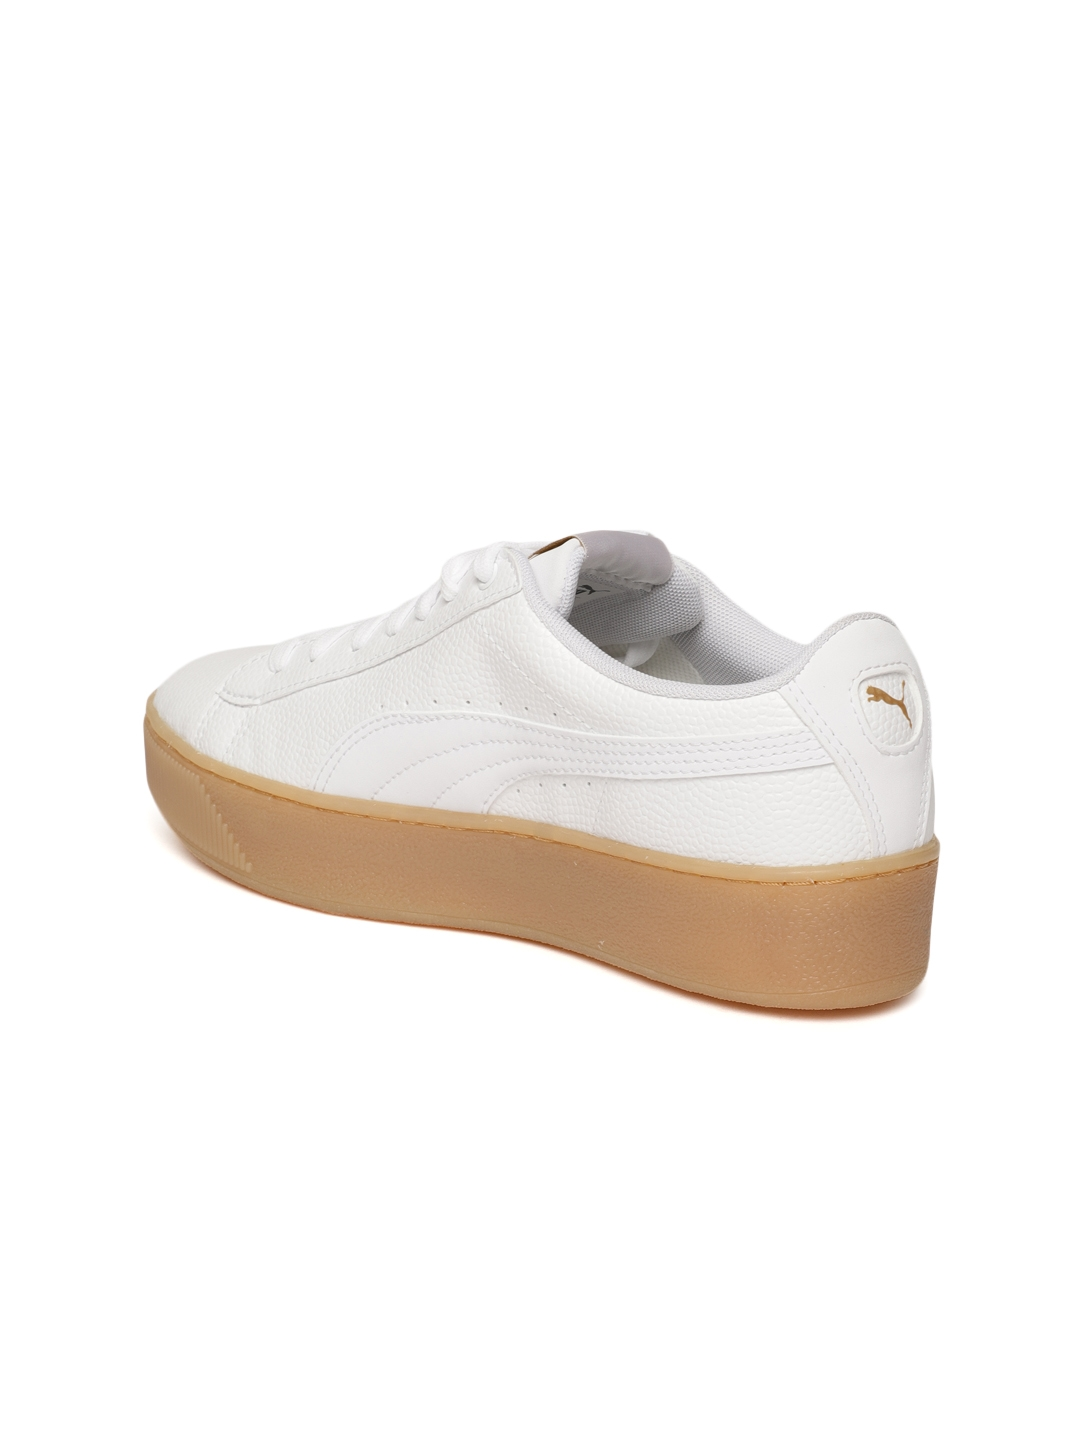 43ce302e8712 Buy Puma Women White Vikky Platform VT Sneakers - Casual Shoes for ...